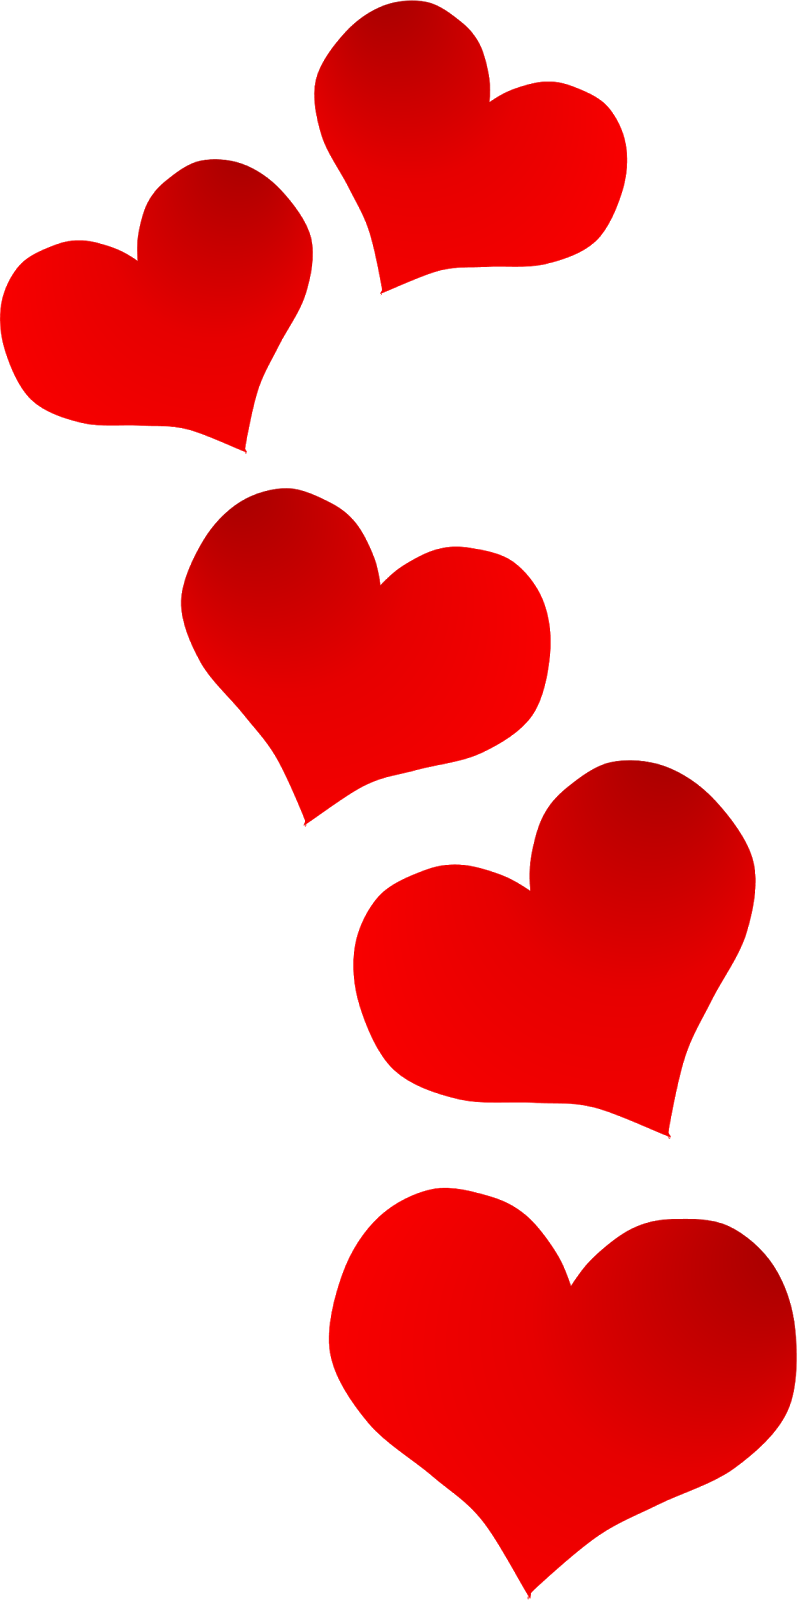 Hearts clipart 7 » Clipart Station